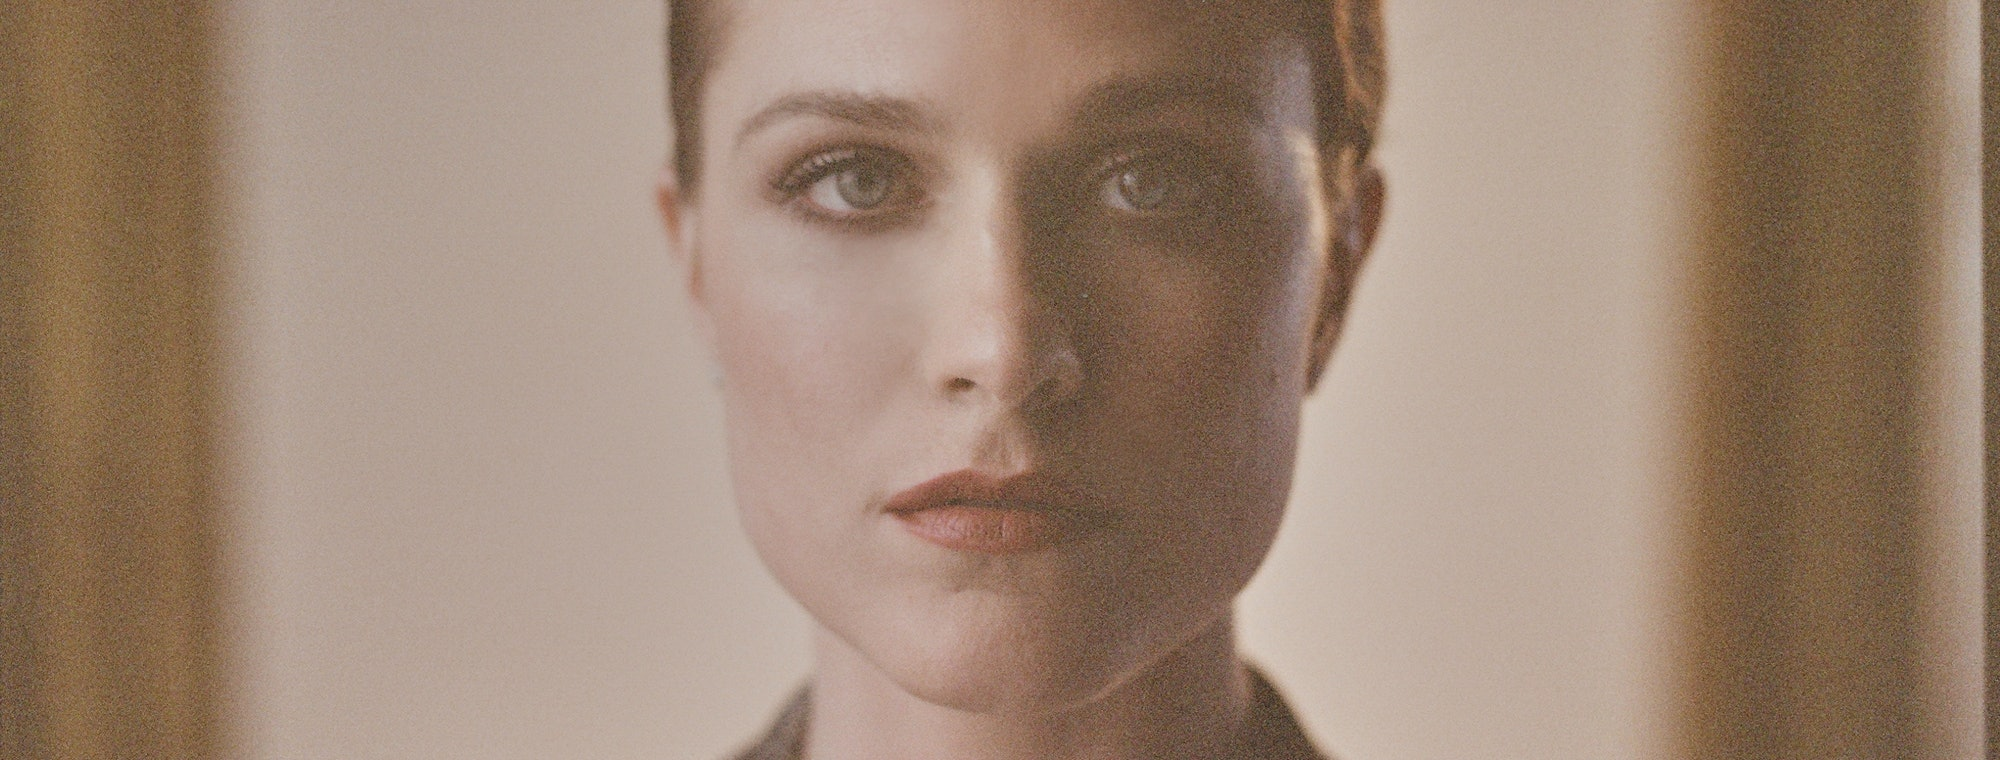 Evan Rachel Wood for Bustle's Holiday Issue 2019.